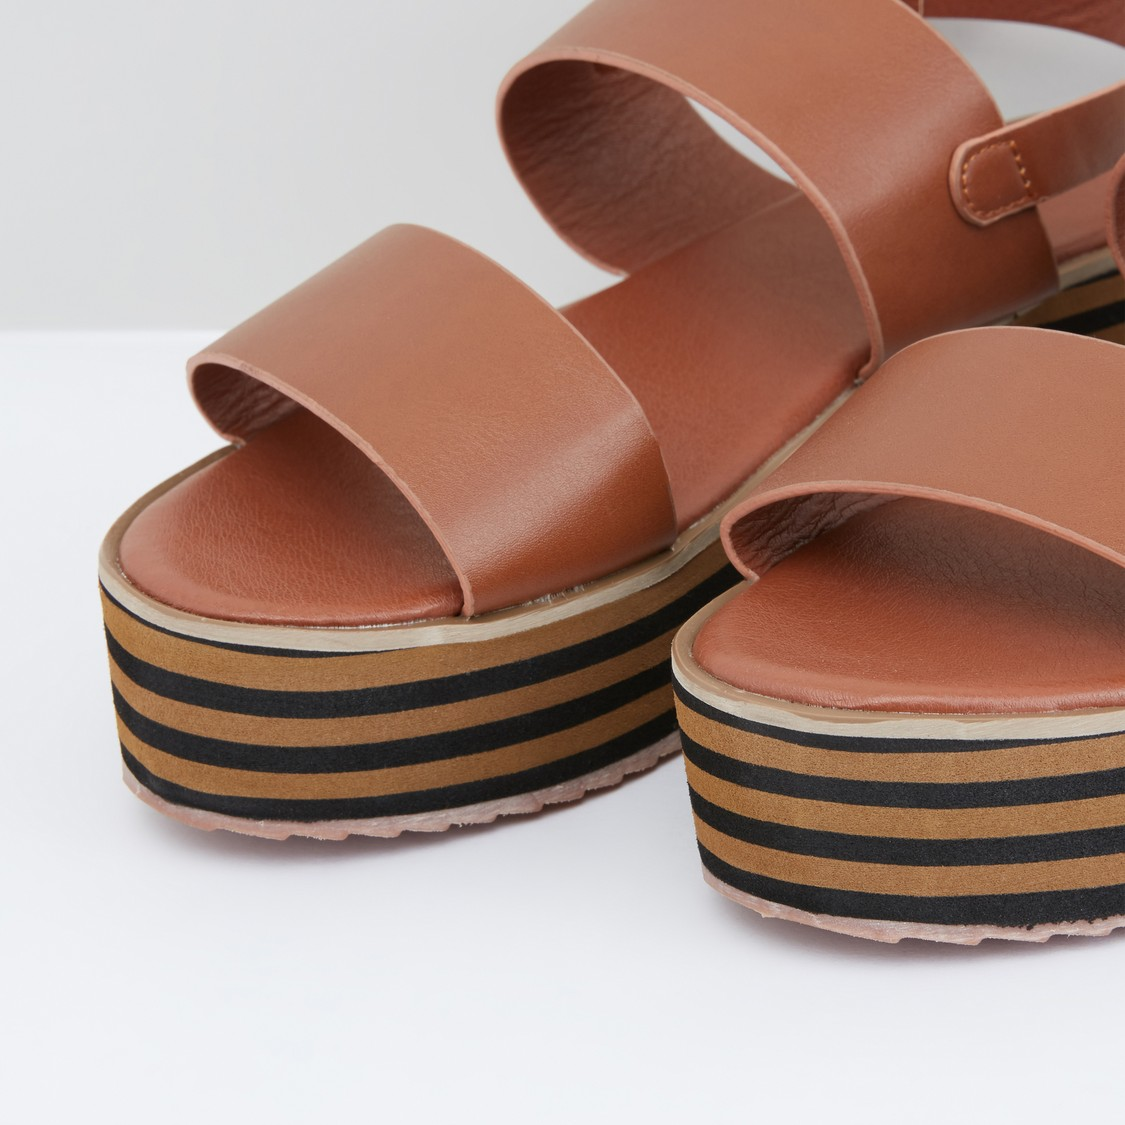 Dual Strap Wedges with Pin Buckle Closure